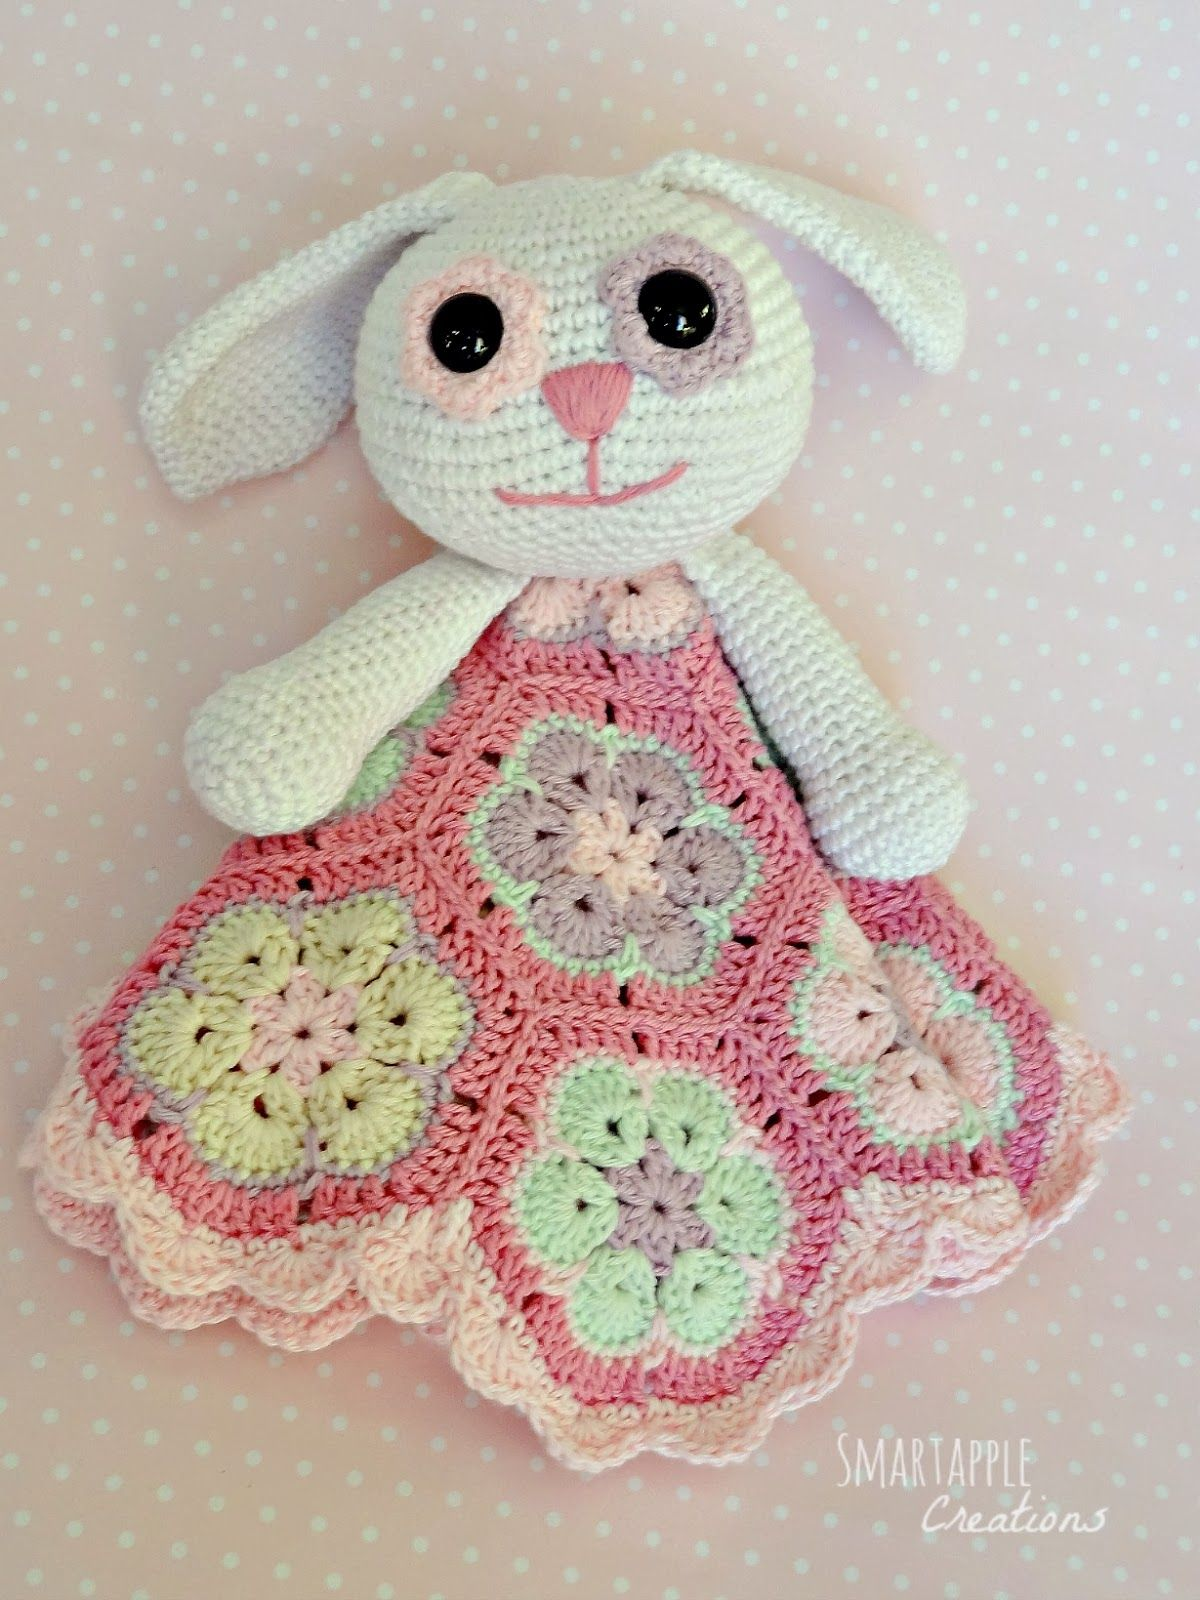 Smartapple Creations - amigurumi and crochet: Crochet bunny lovey ...